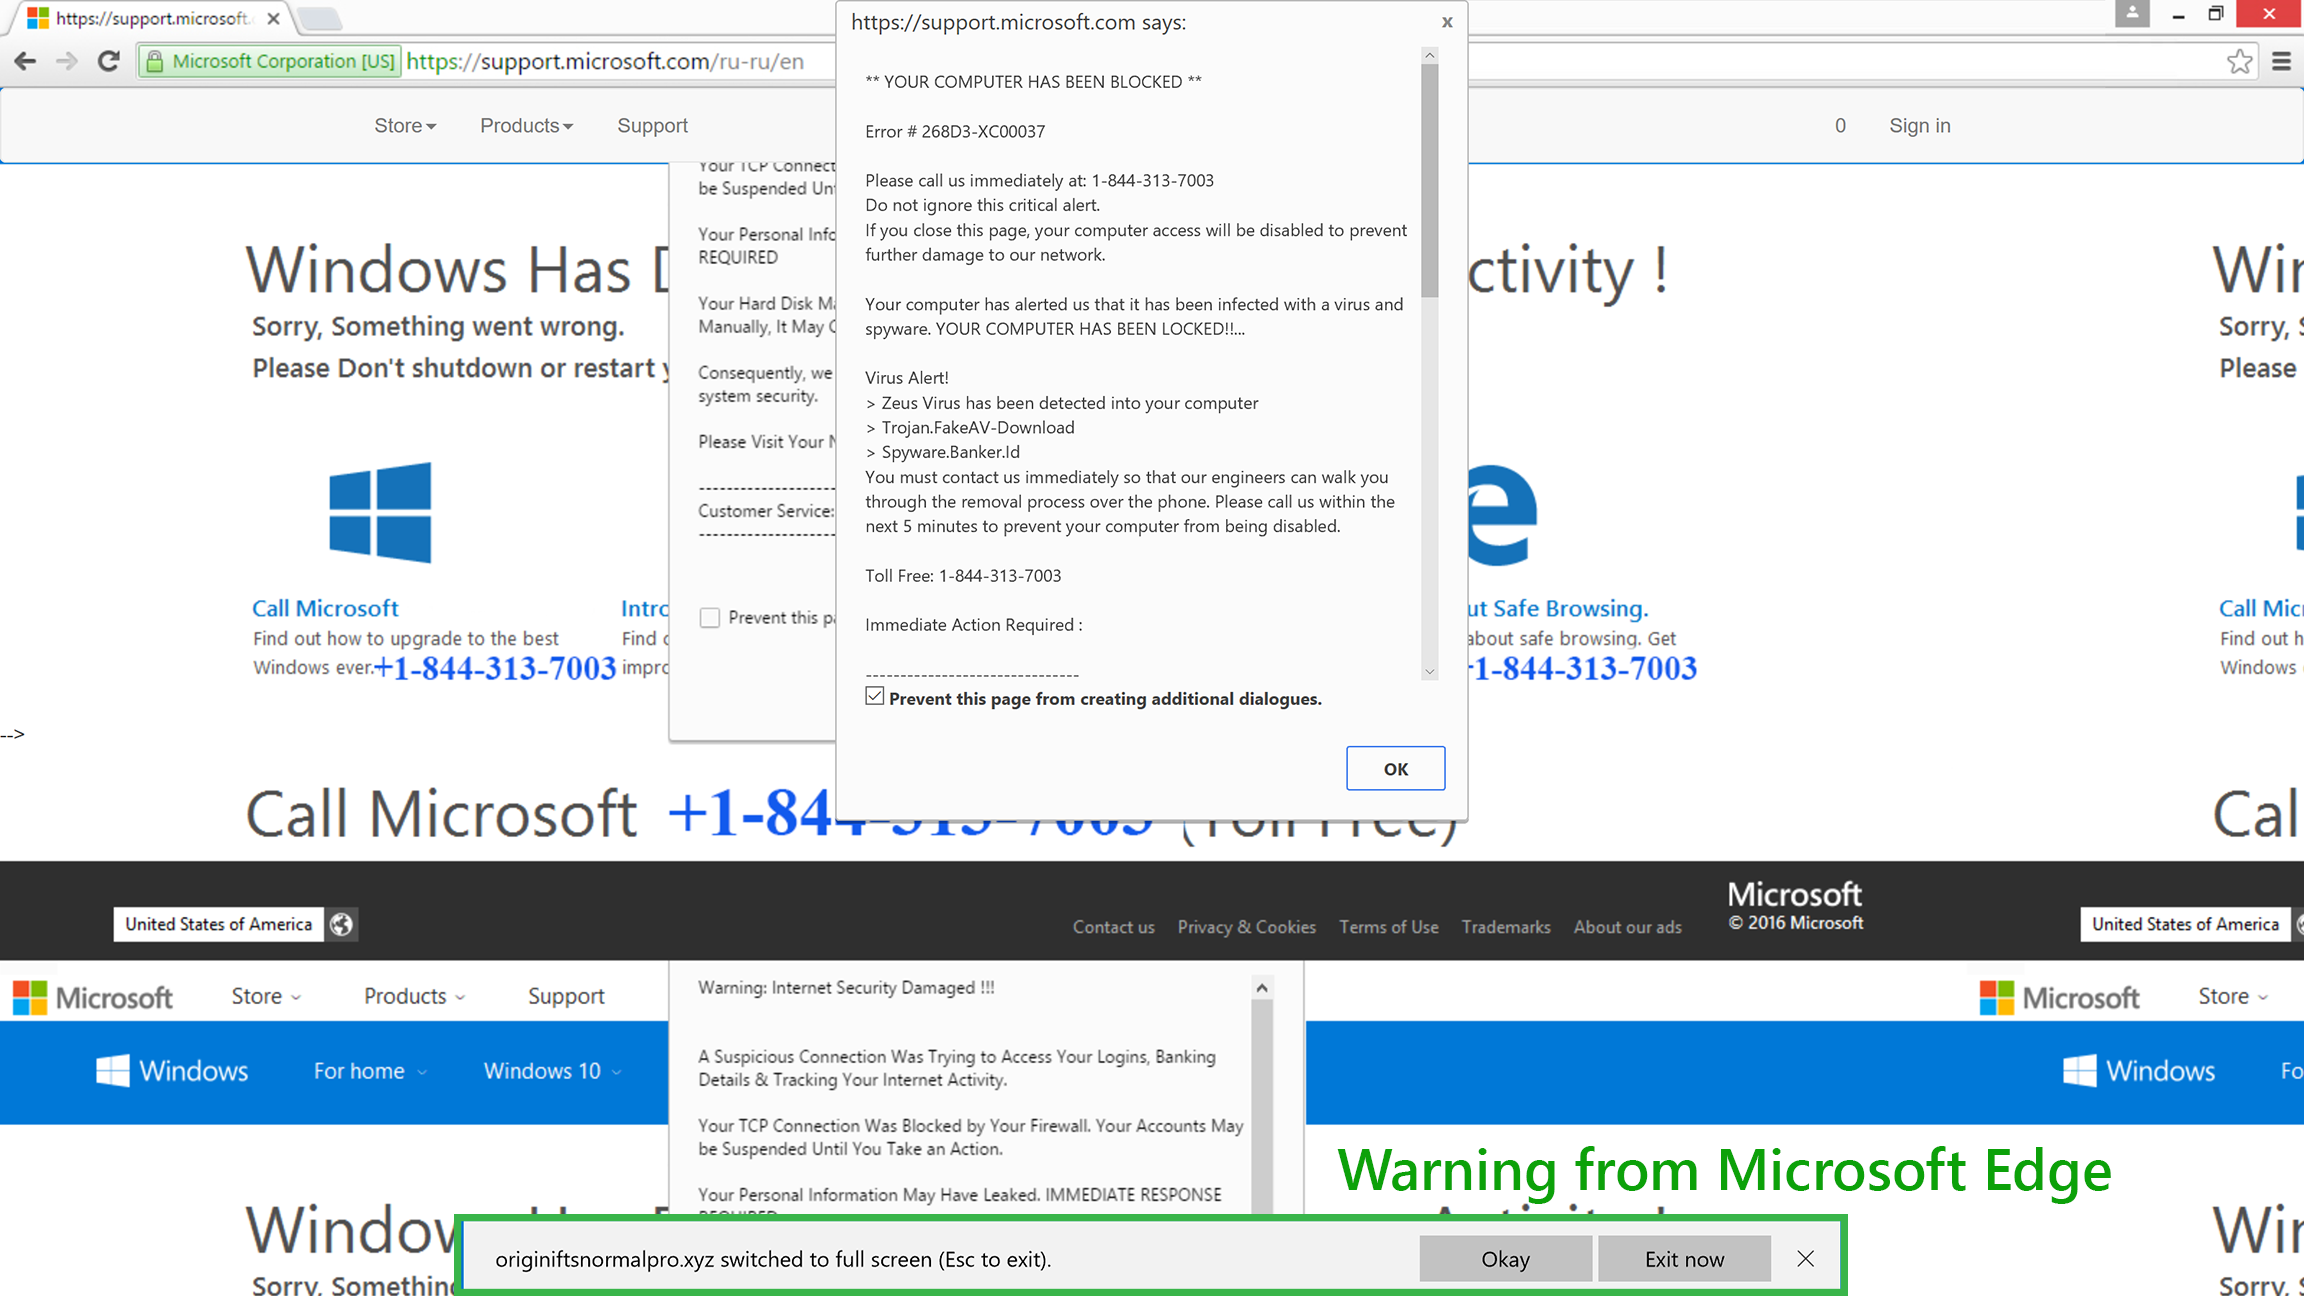 tech-support-scam-full-screen-microsoft-edge-message